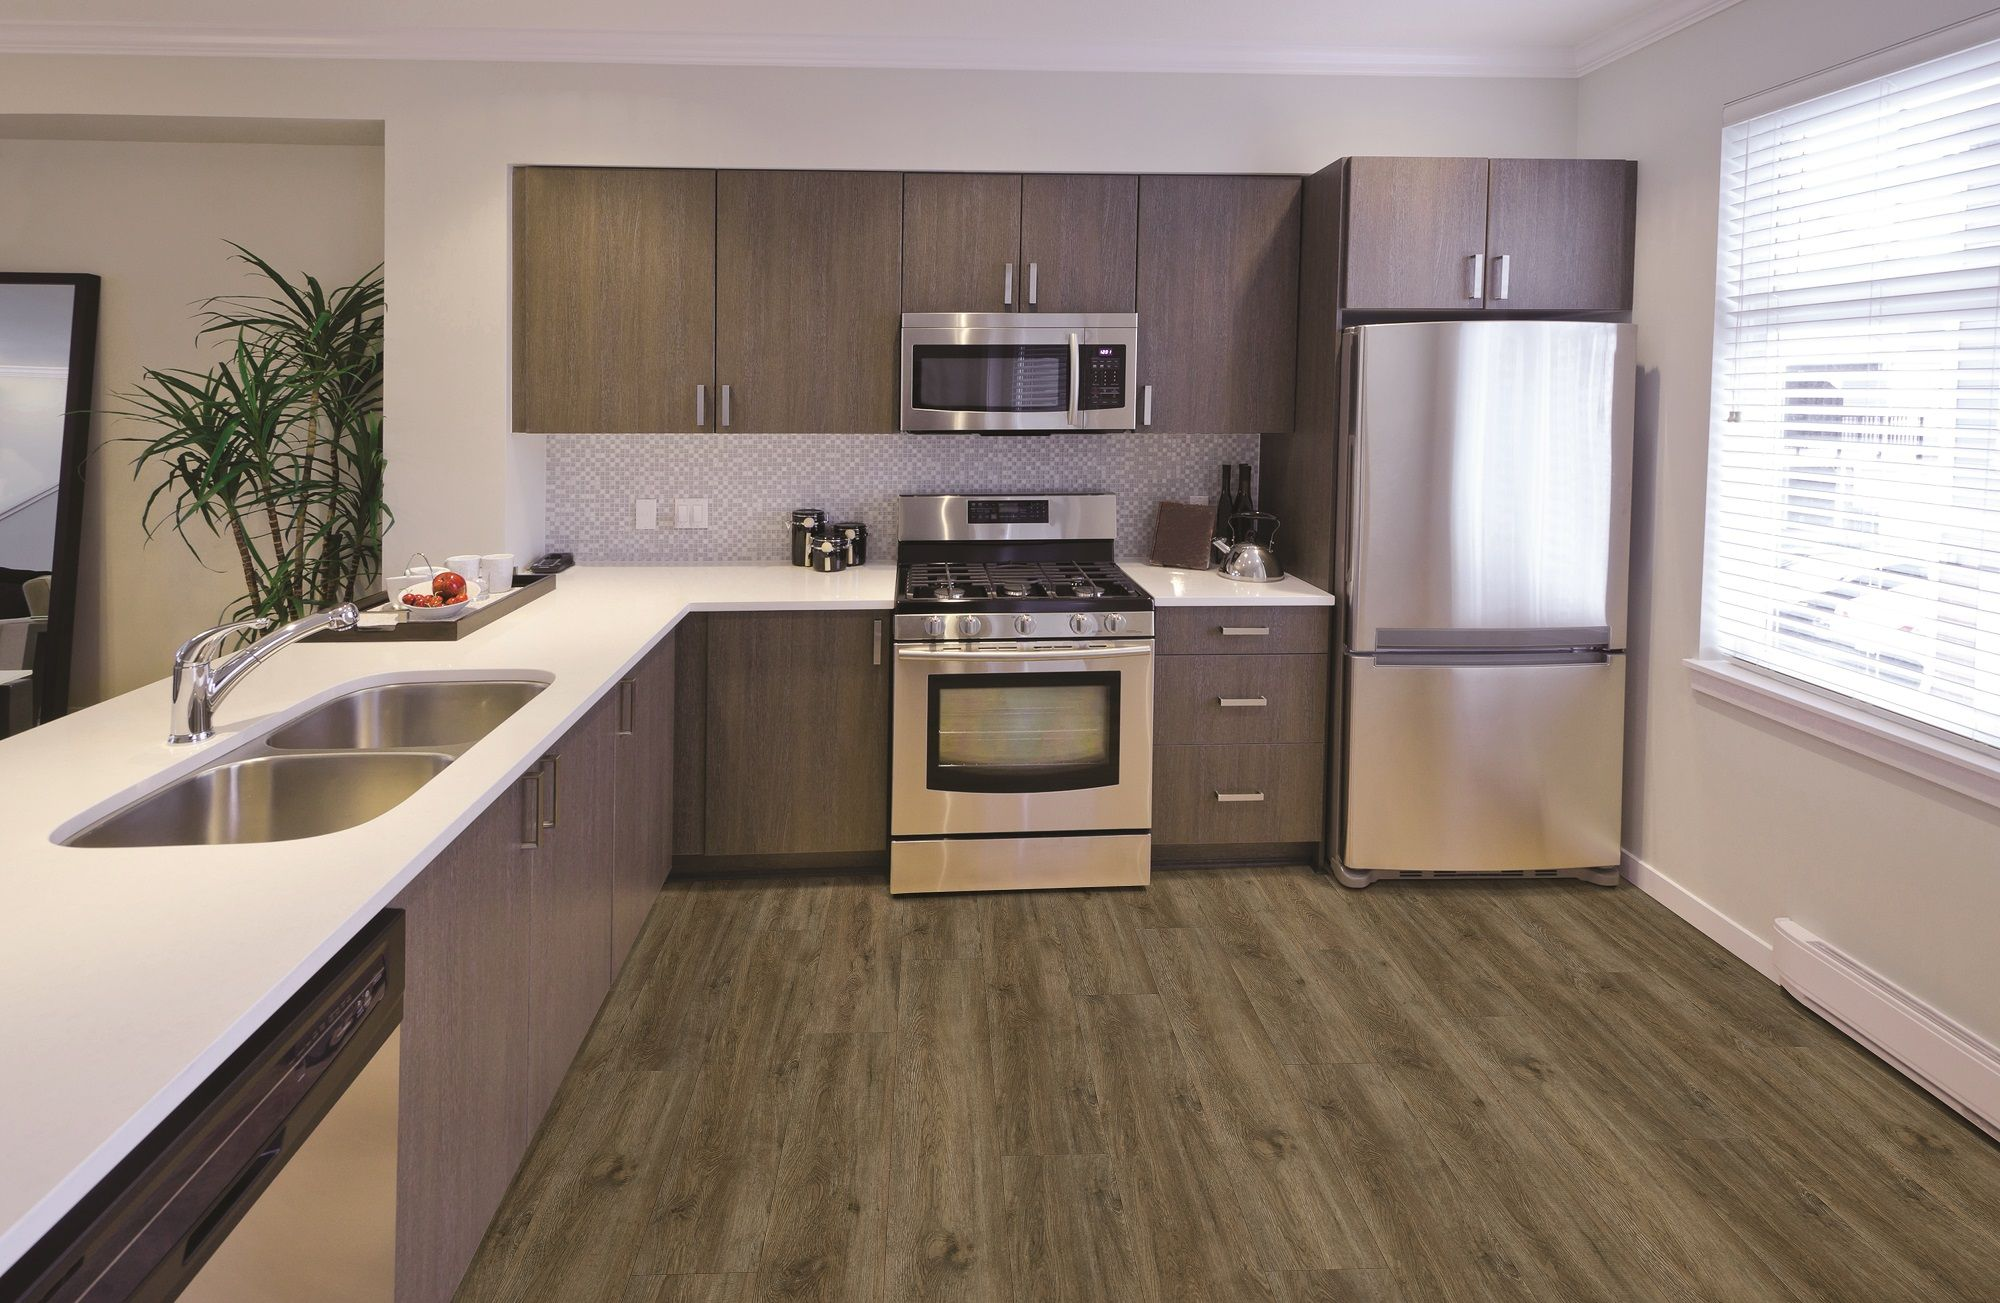 Coretec plus xl muir oak modern kitchen lvt planks Luxury kitchen flooring